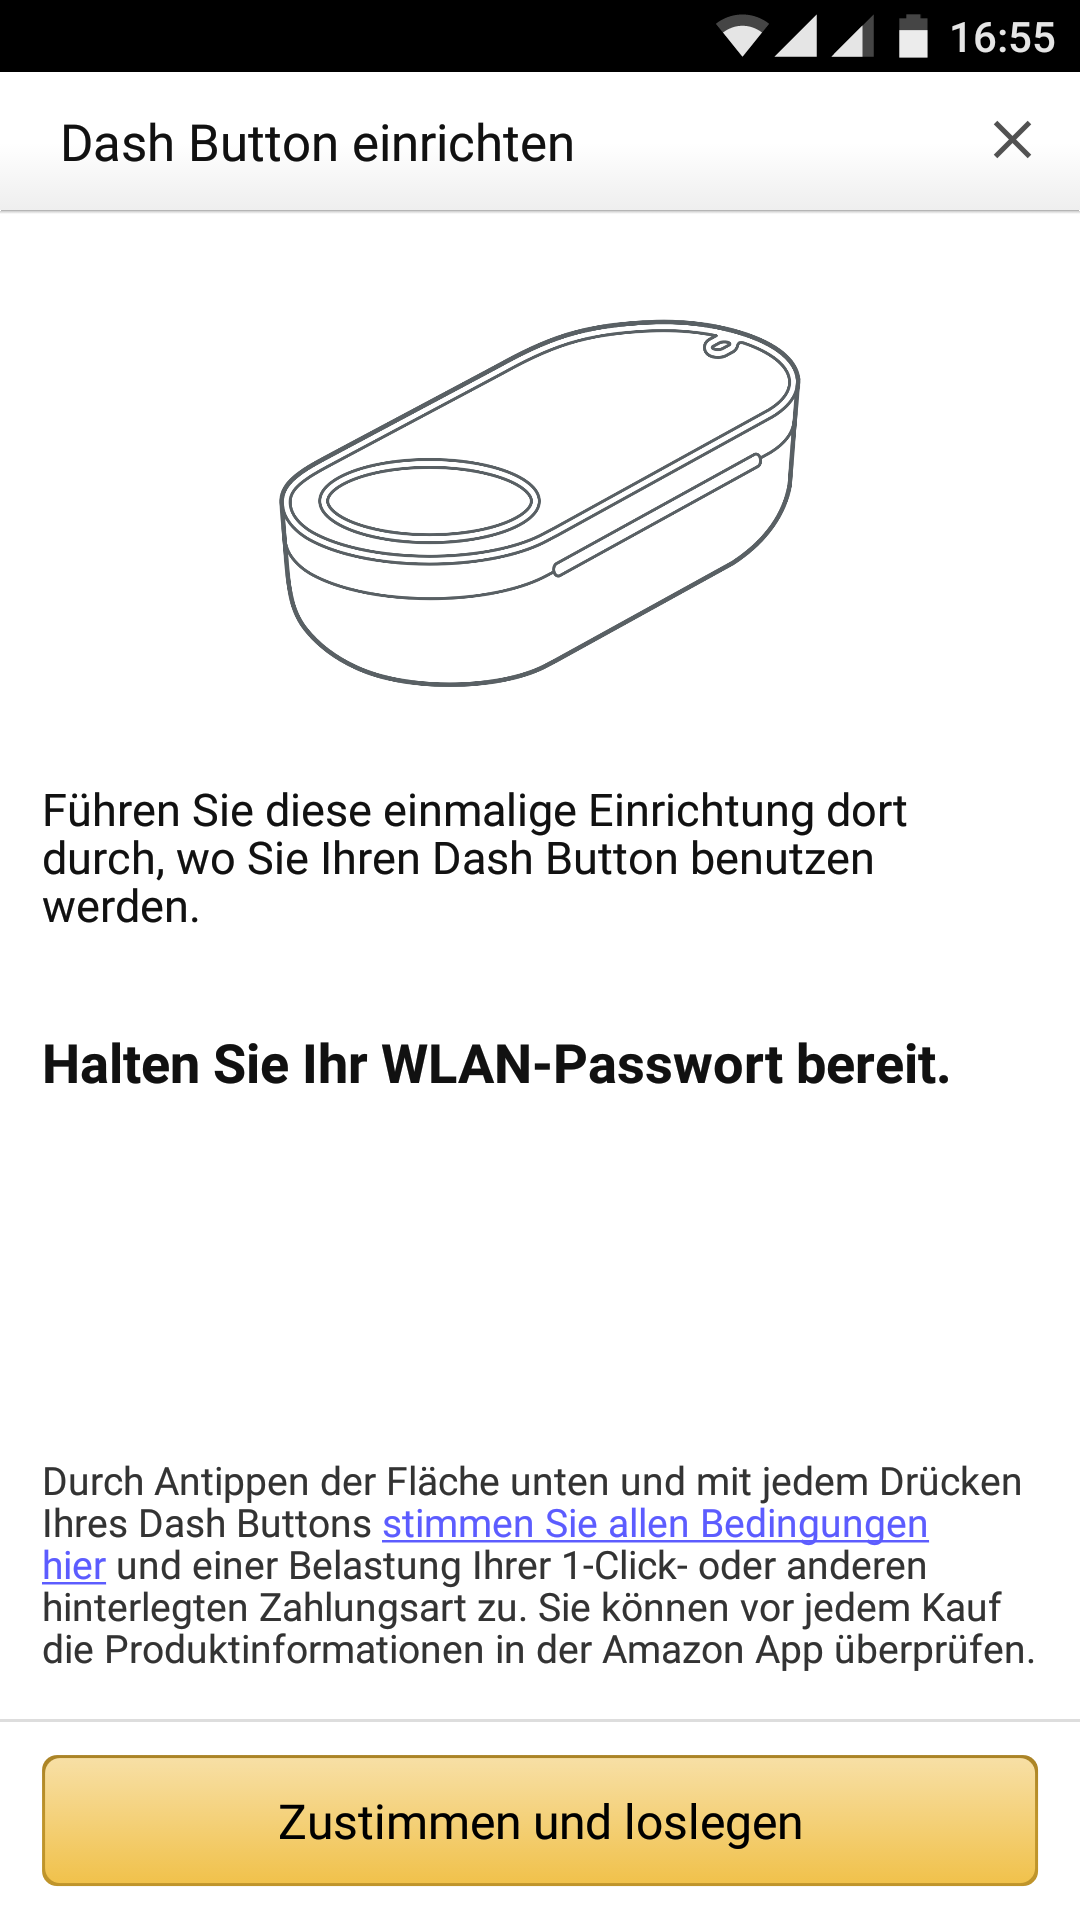 smart-home-dash-button-app-dash-einichten